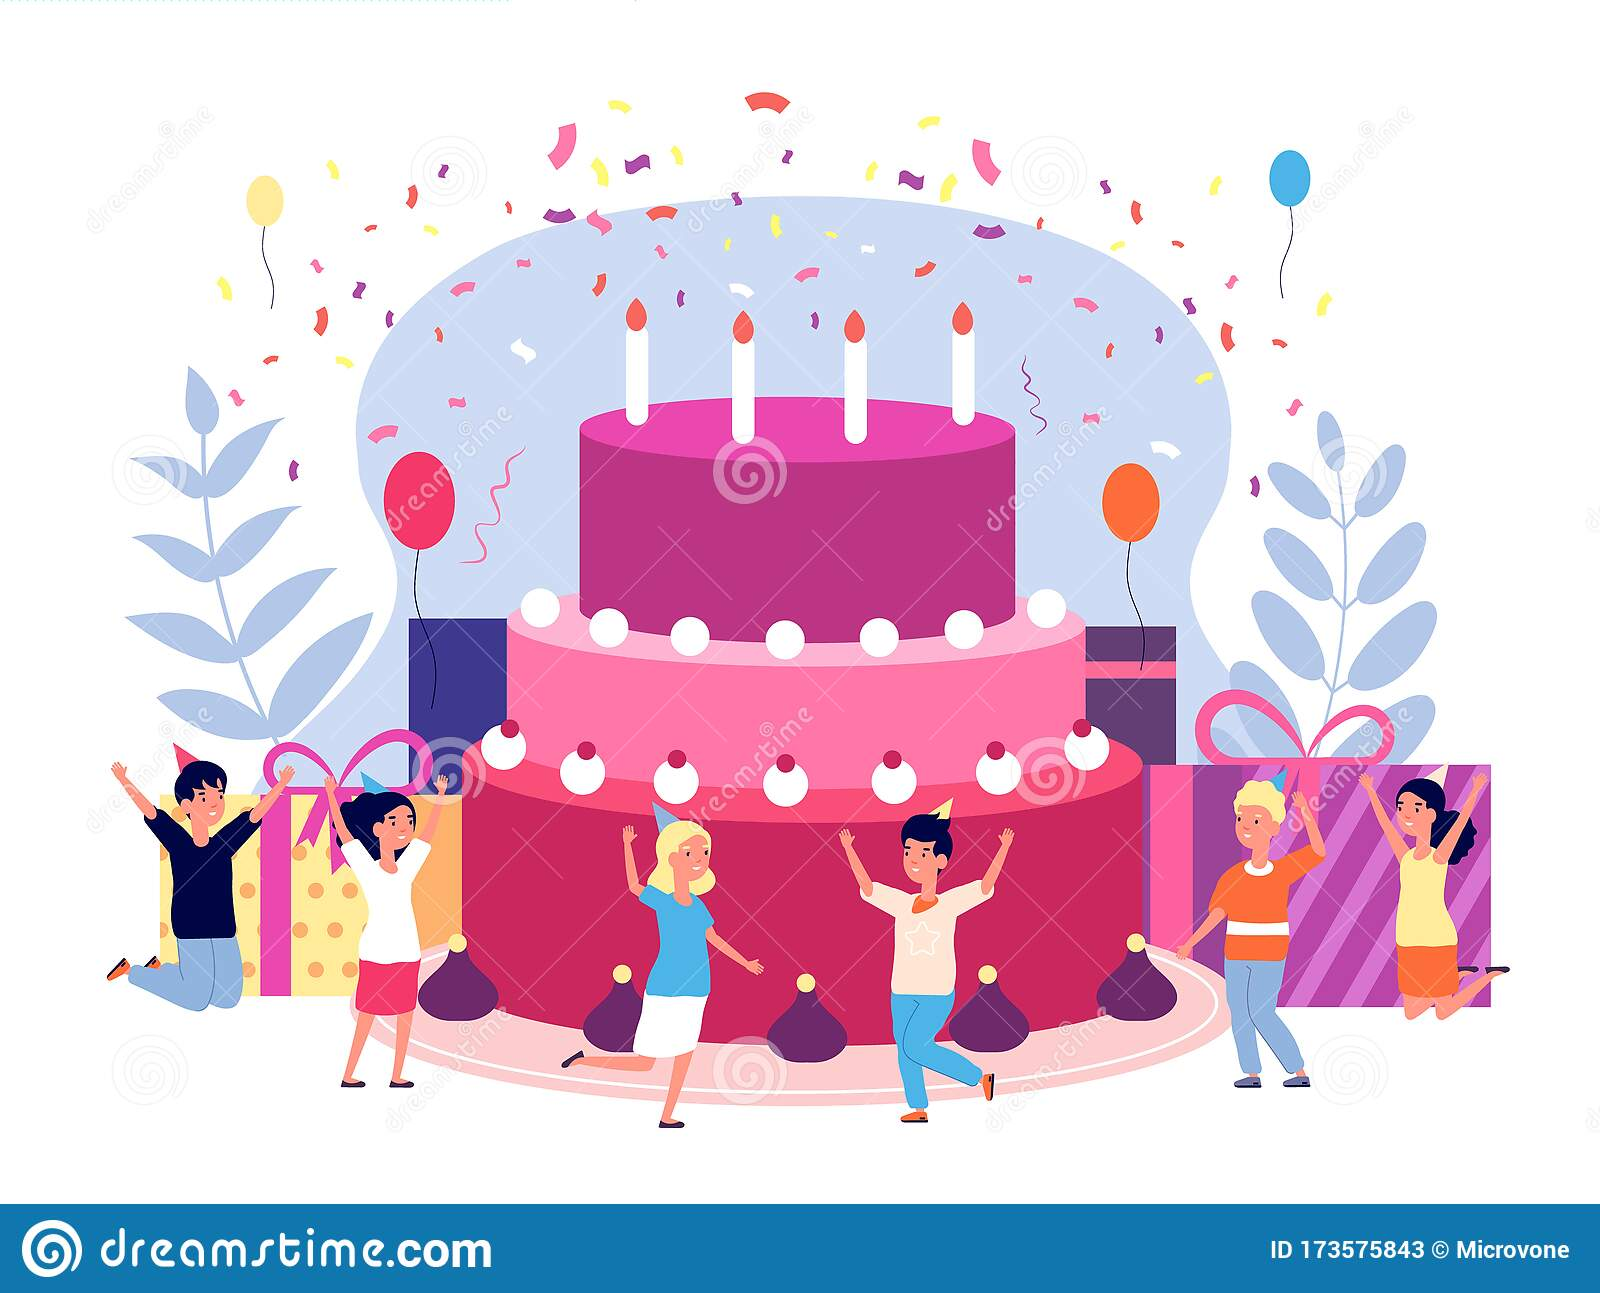 Kids Birthday Party Children Celebration Friends With Balloons And Confetti Cake Gifts And Candles Group Girls And Stock Vector Illustration Of Confetti Character 173575843